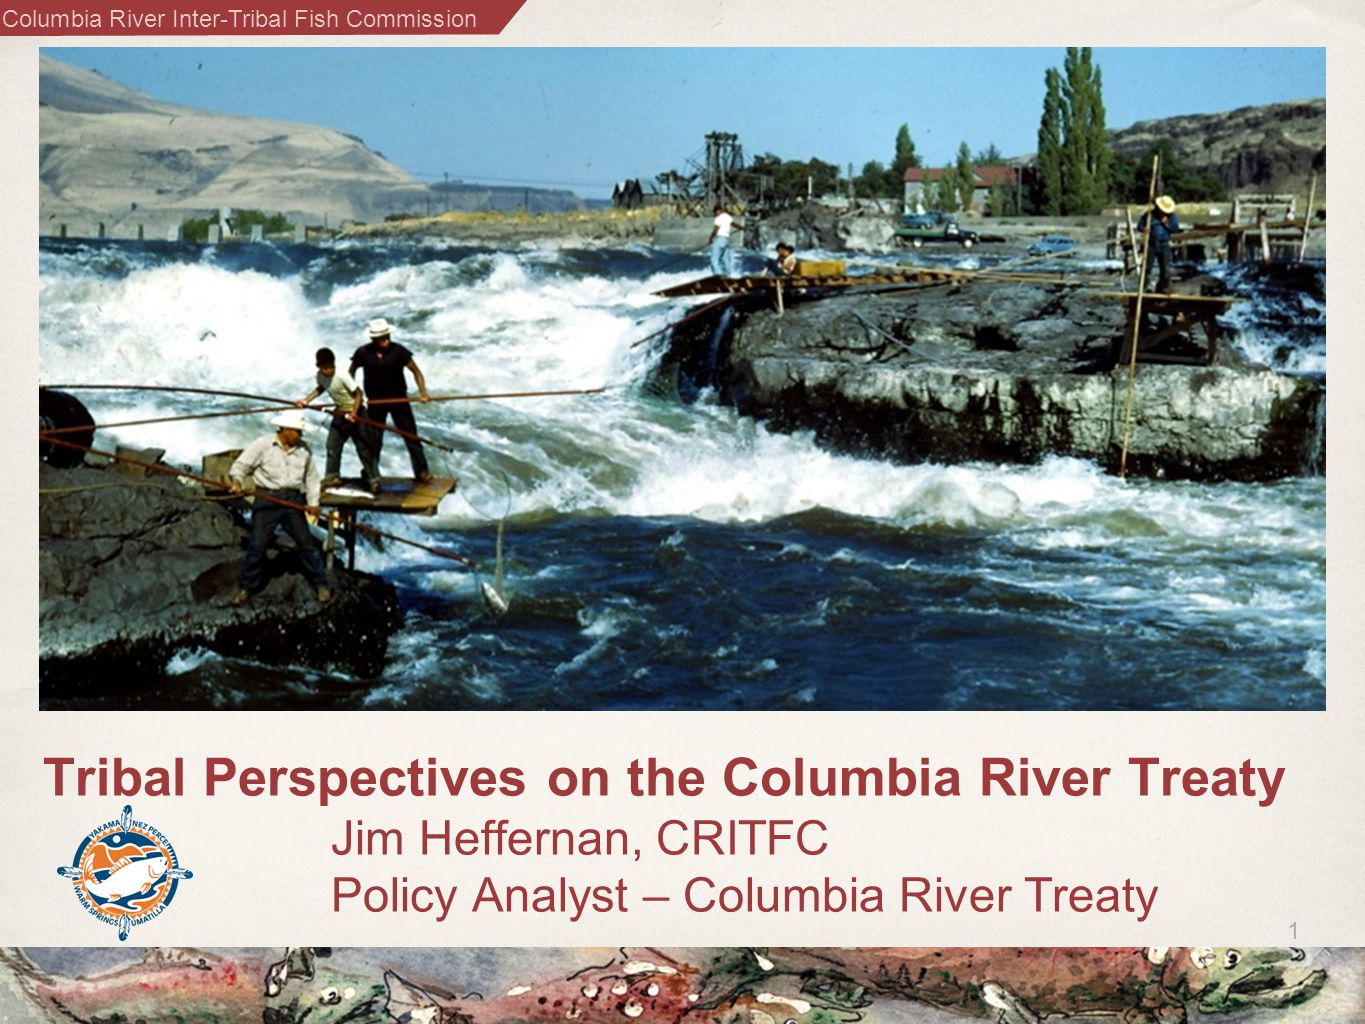 Columbia River Inter-Tribal Fish Commission Fostering a culture of abundant salmon since time immemorial